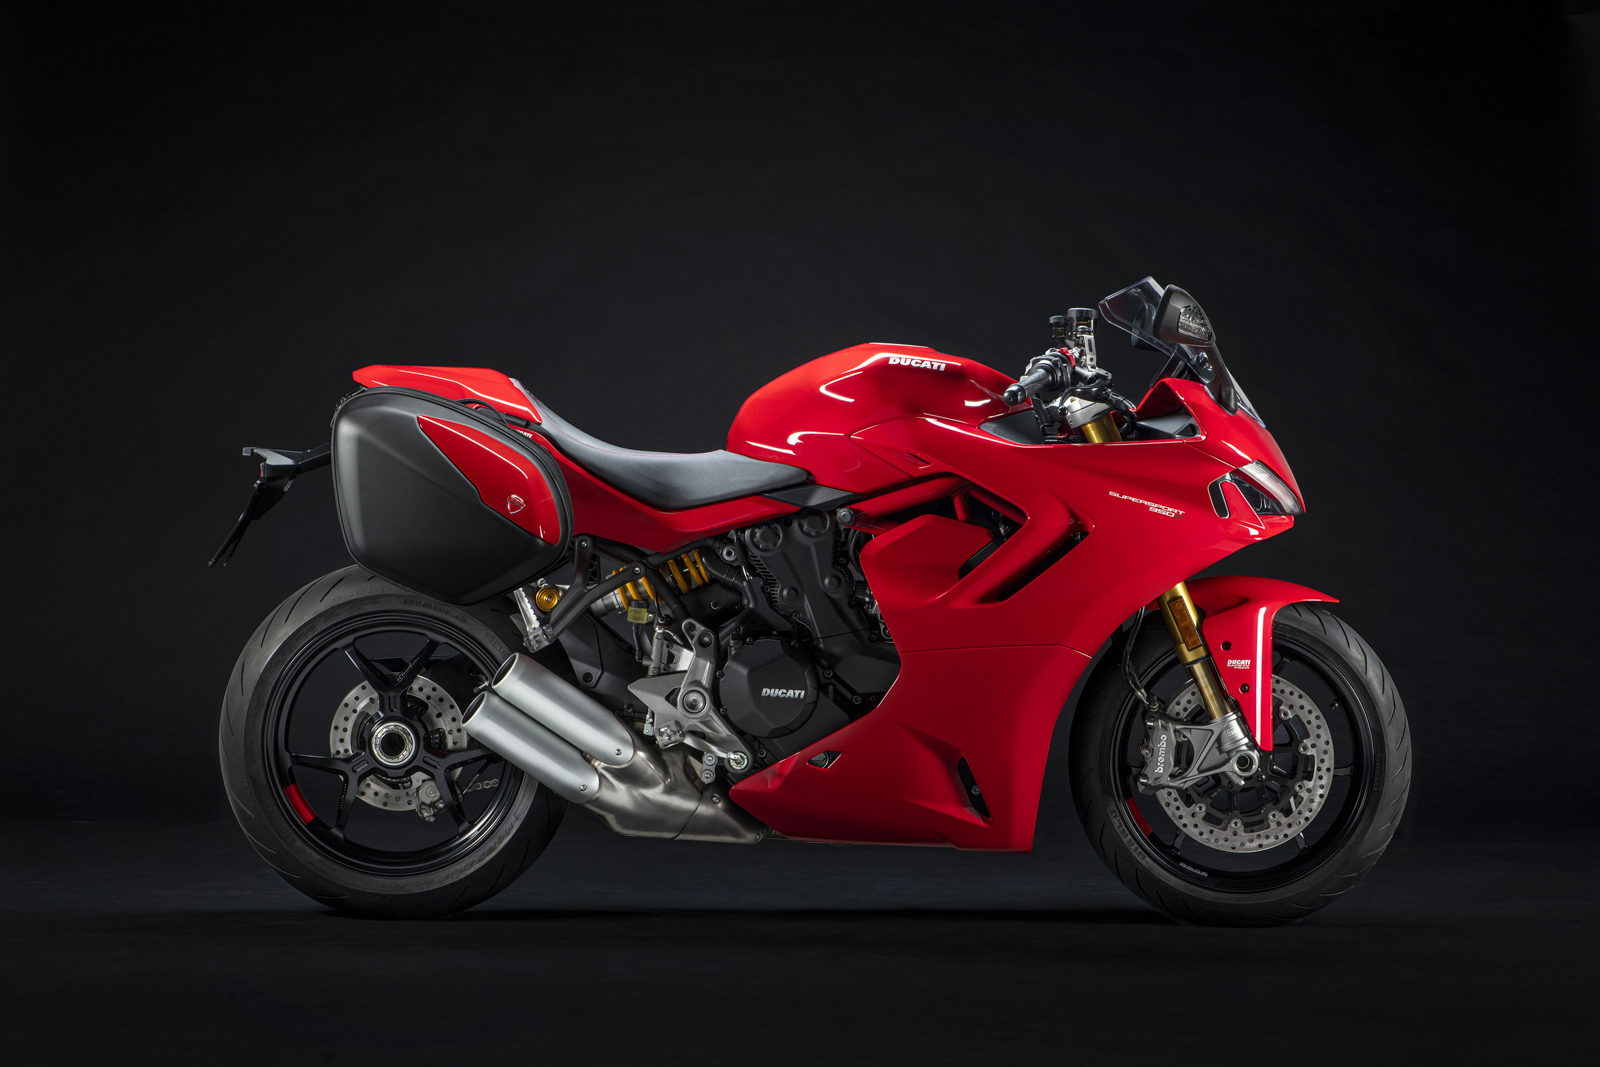 [VIDEO] La Ducati 950 Supersport S 2021 en essai